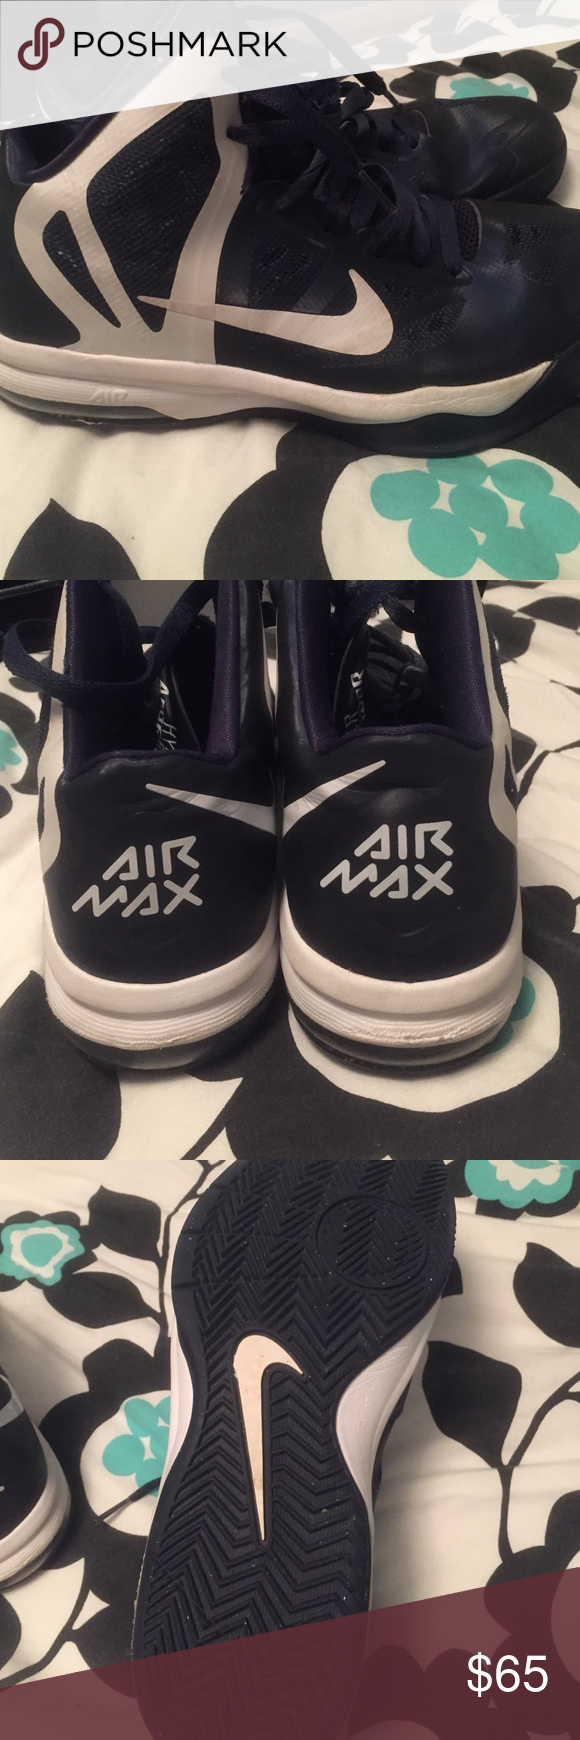 Basketball shoes Nike Air Max basketball shoes. Only worn one season and ready for some more! Nike Shoes Athletic Shoes